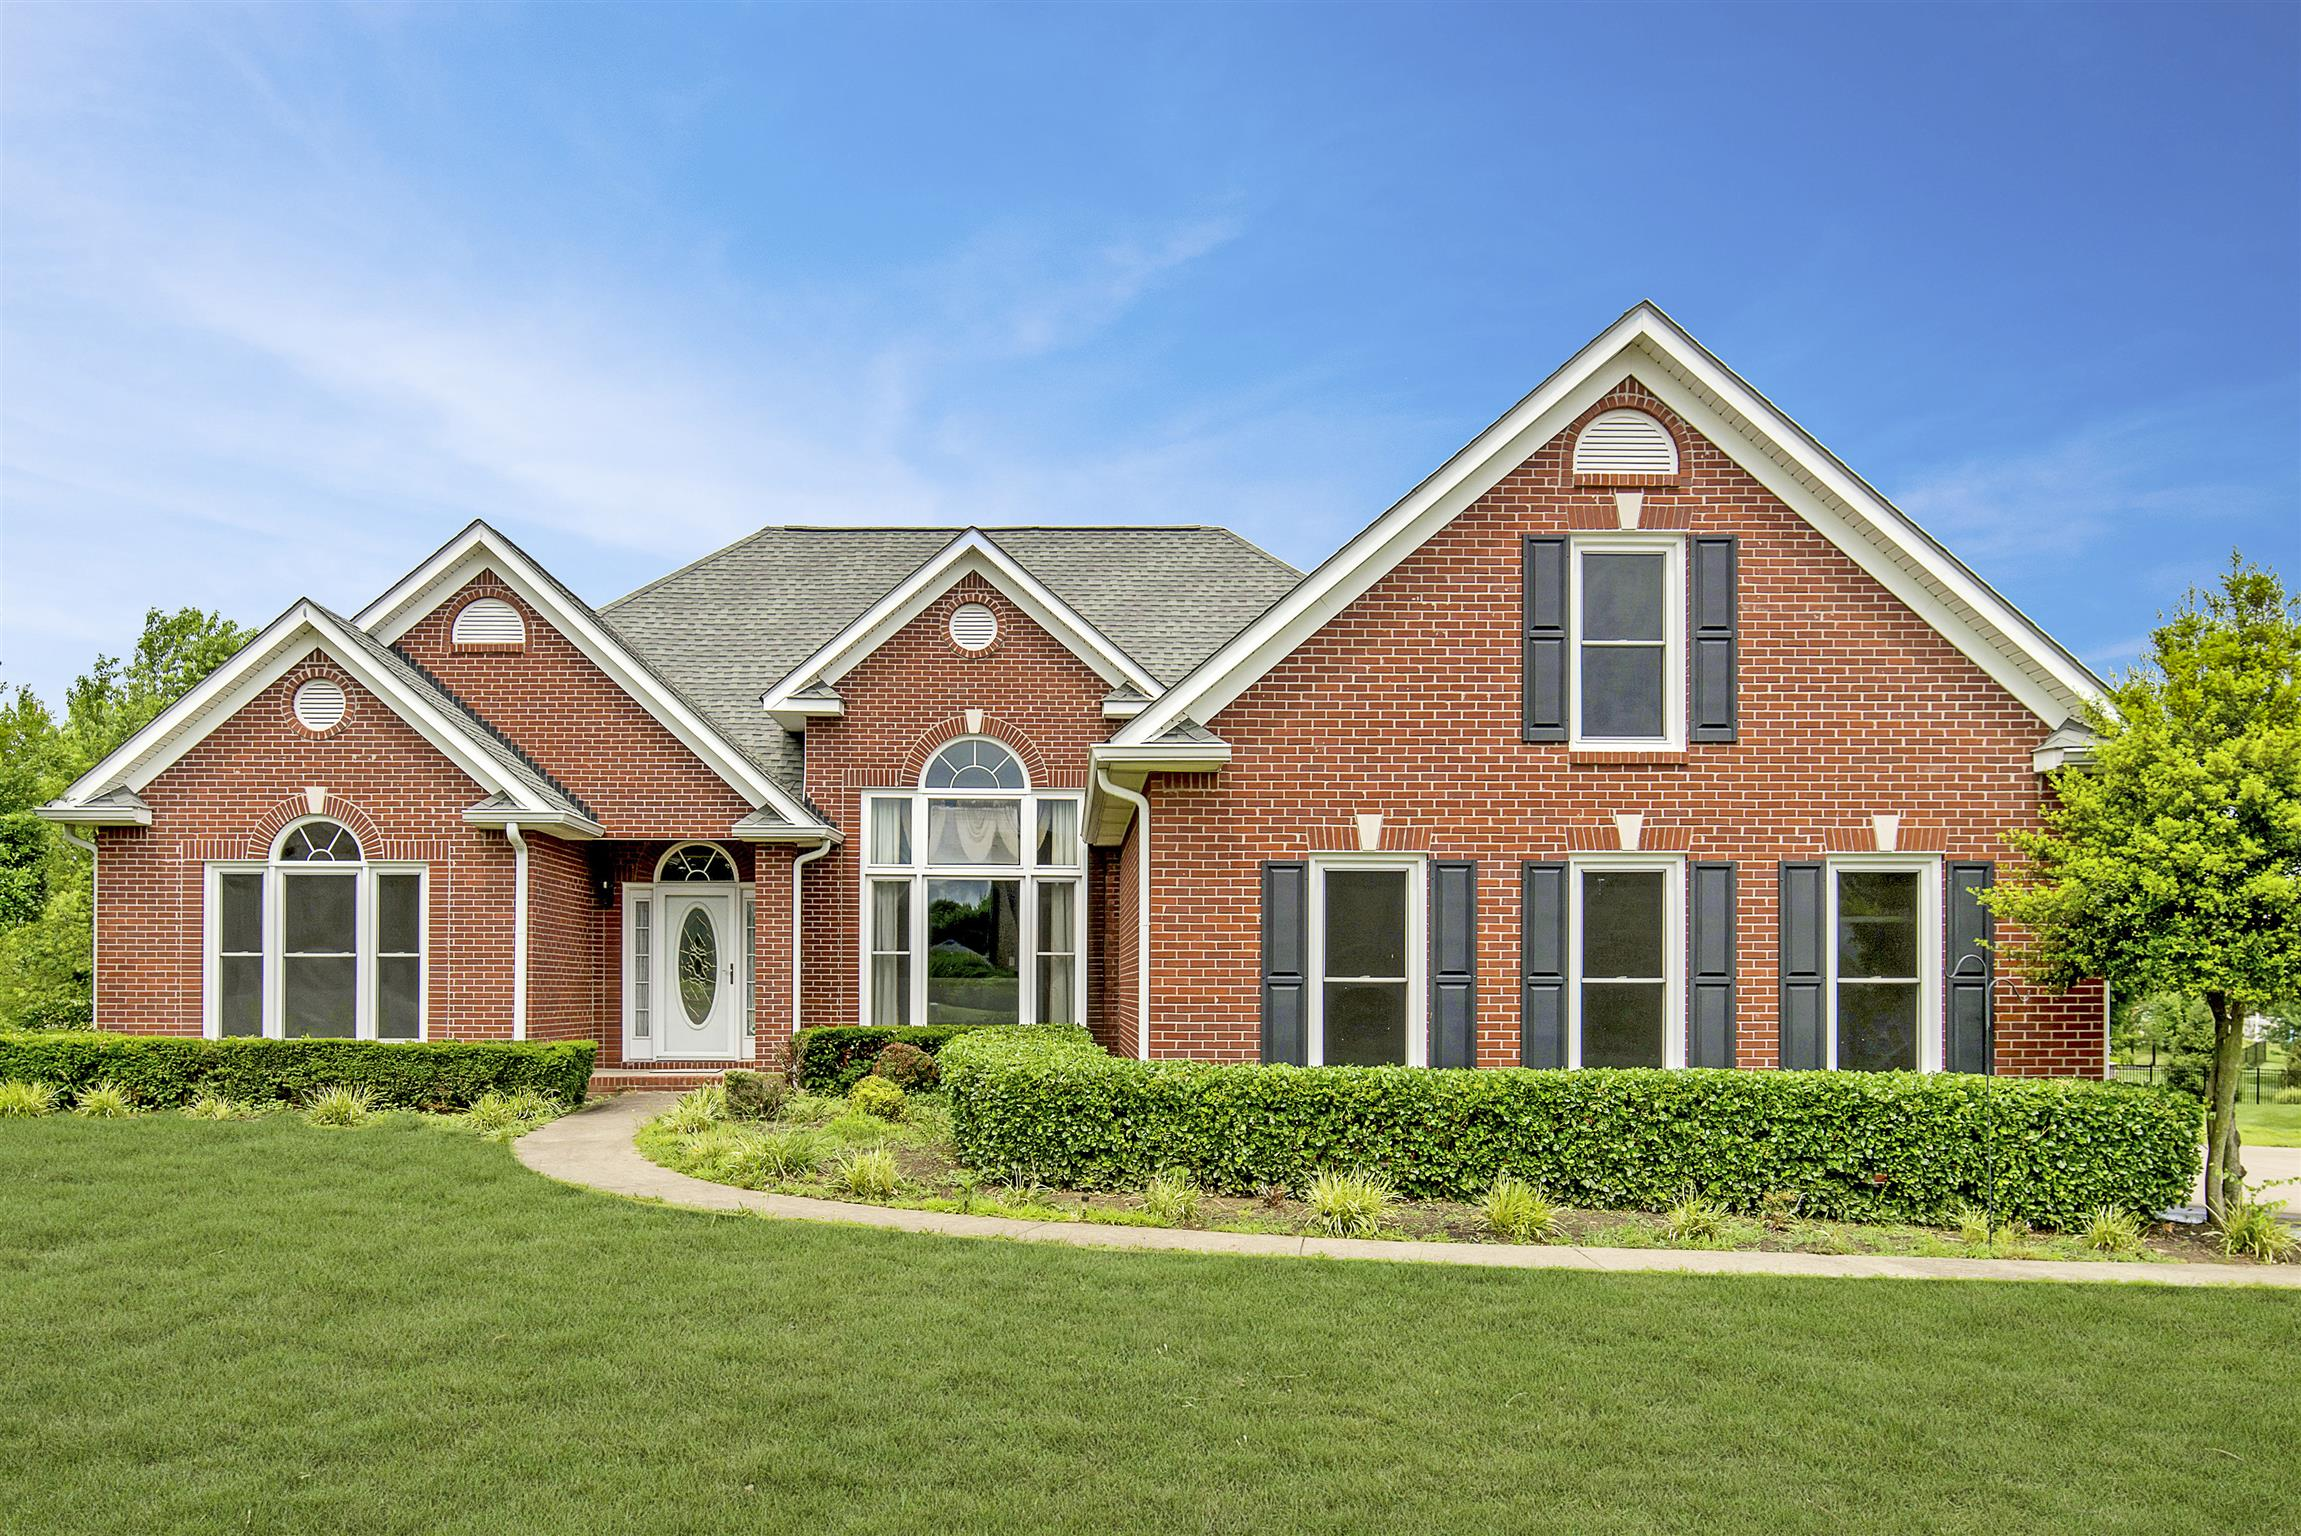 2851 Carriage Way, Clarksville, Tennessee